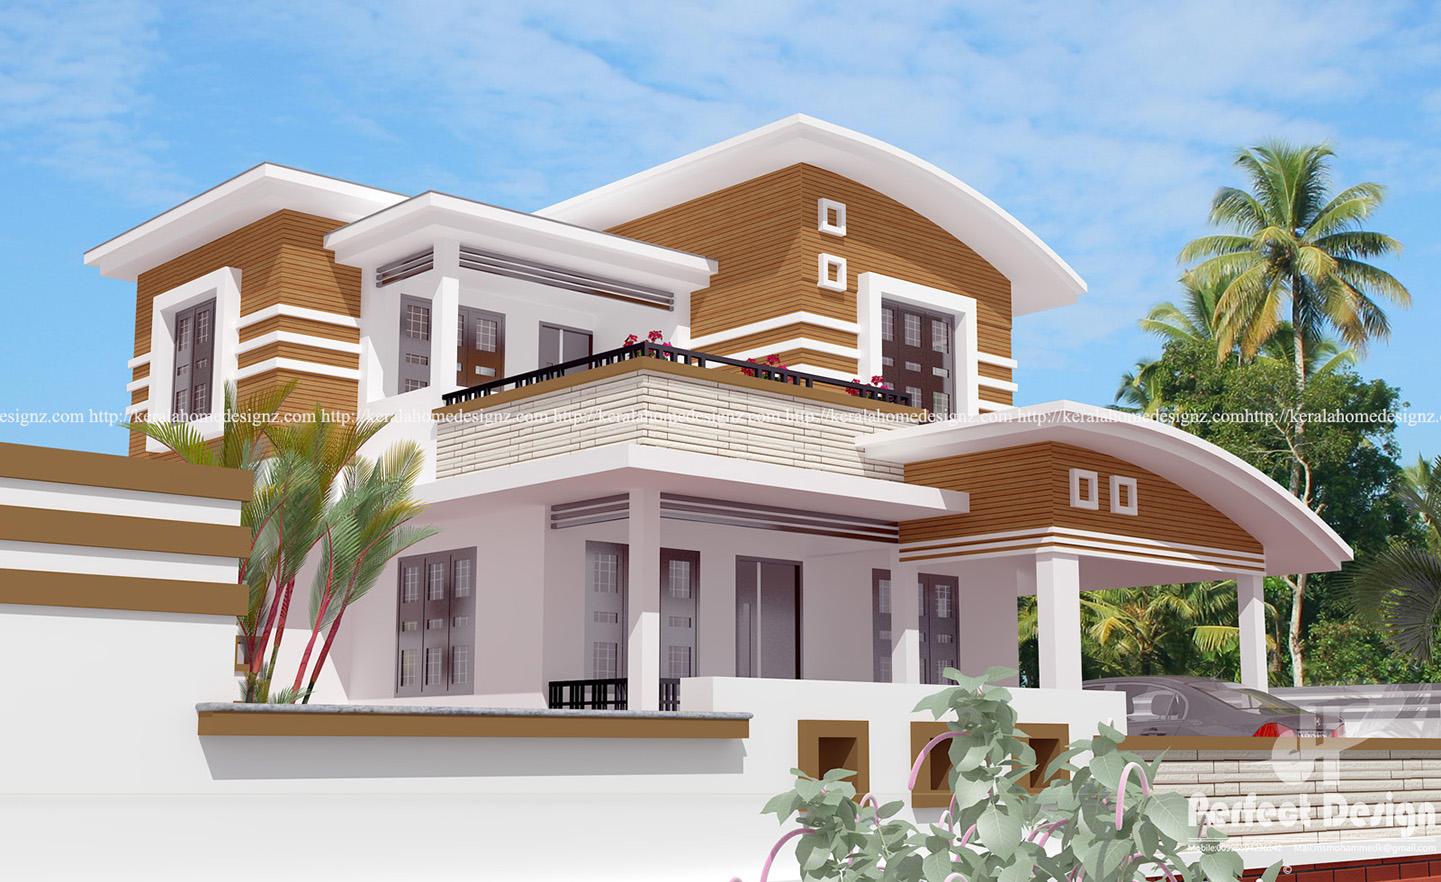 4 bedroom curved roof mix contemporary home